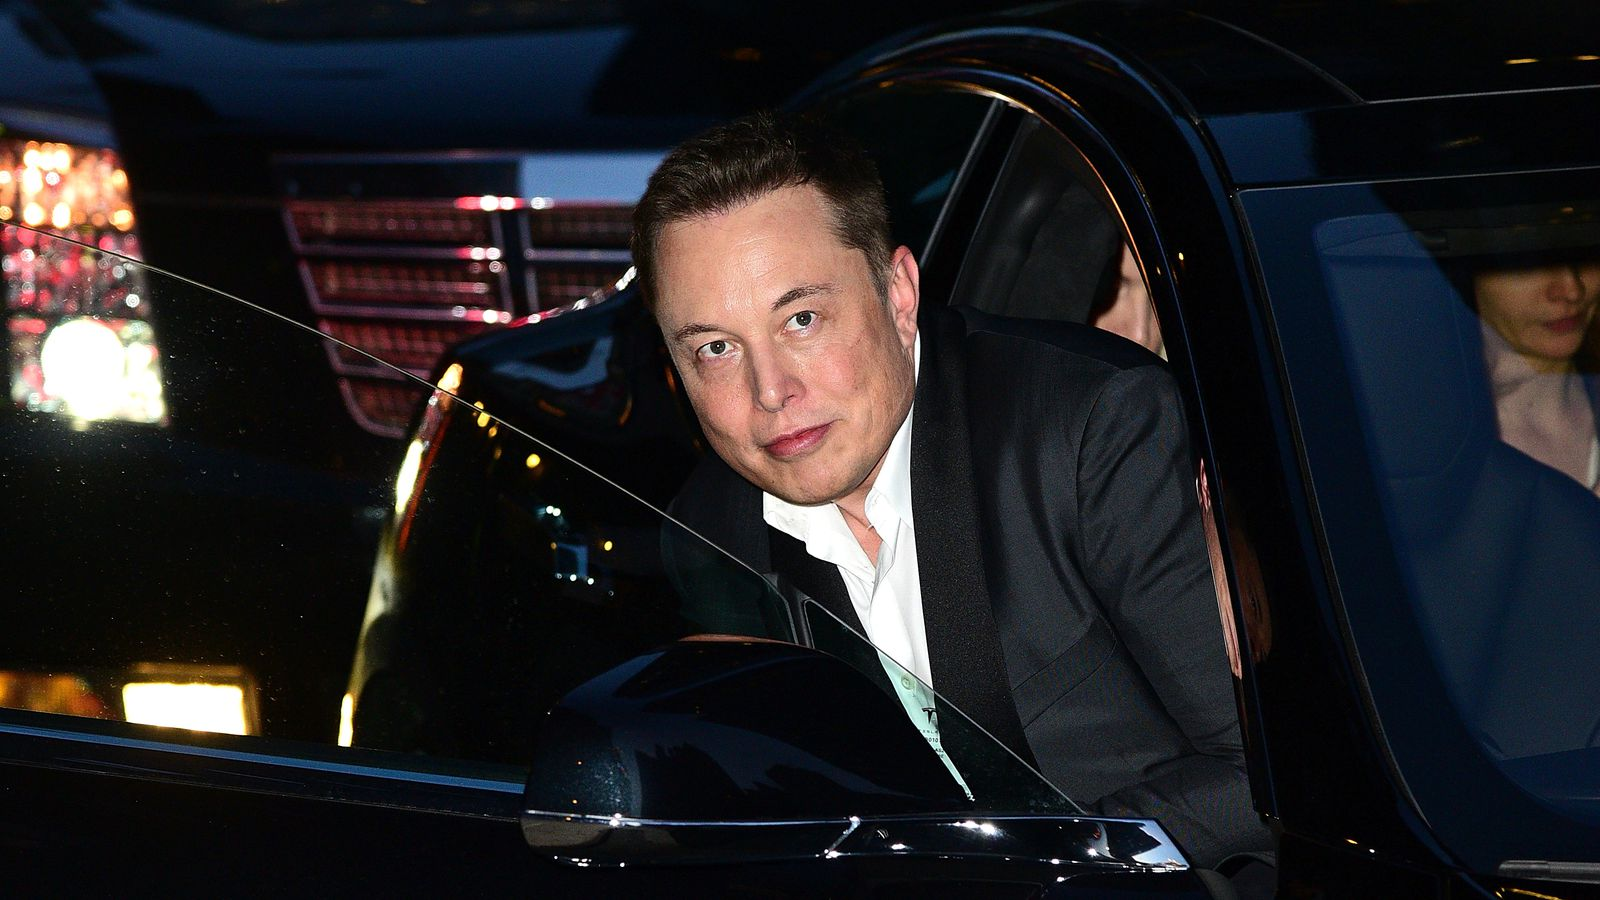 recode.net - Tesla is talking to the music labels about creating its own streaming service